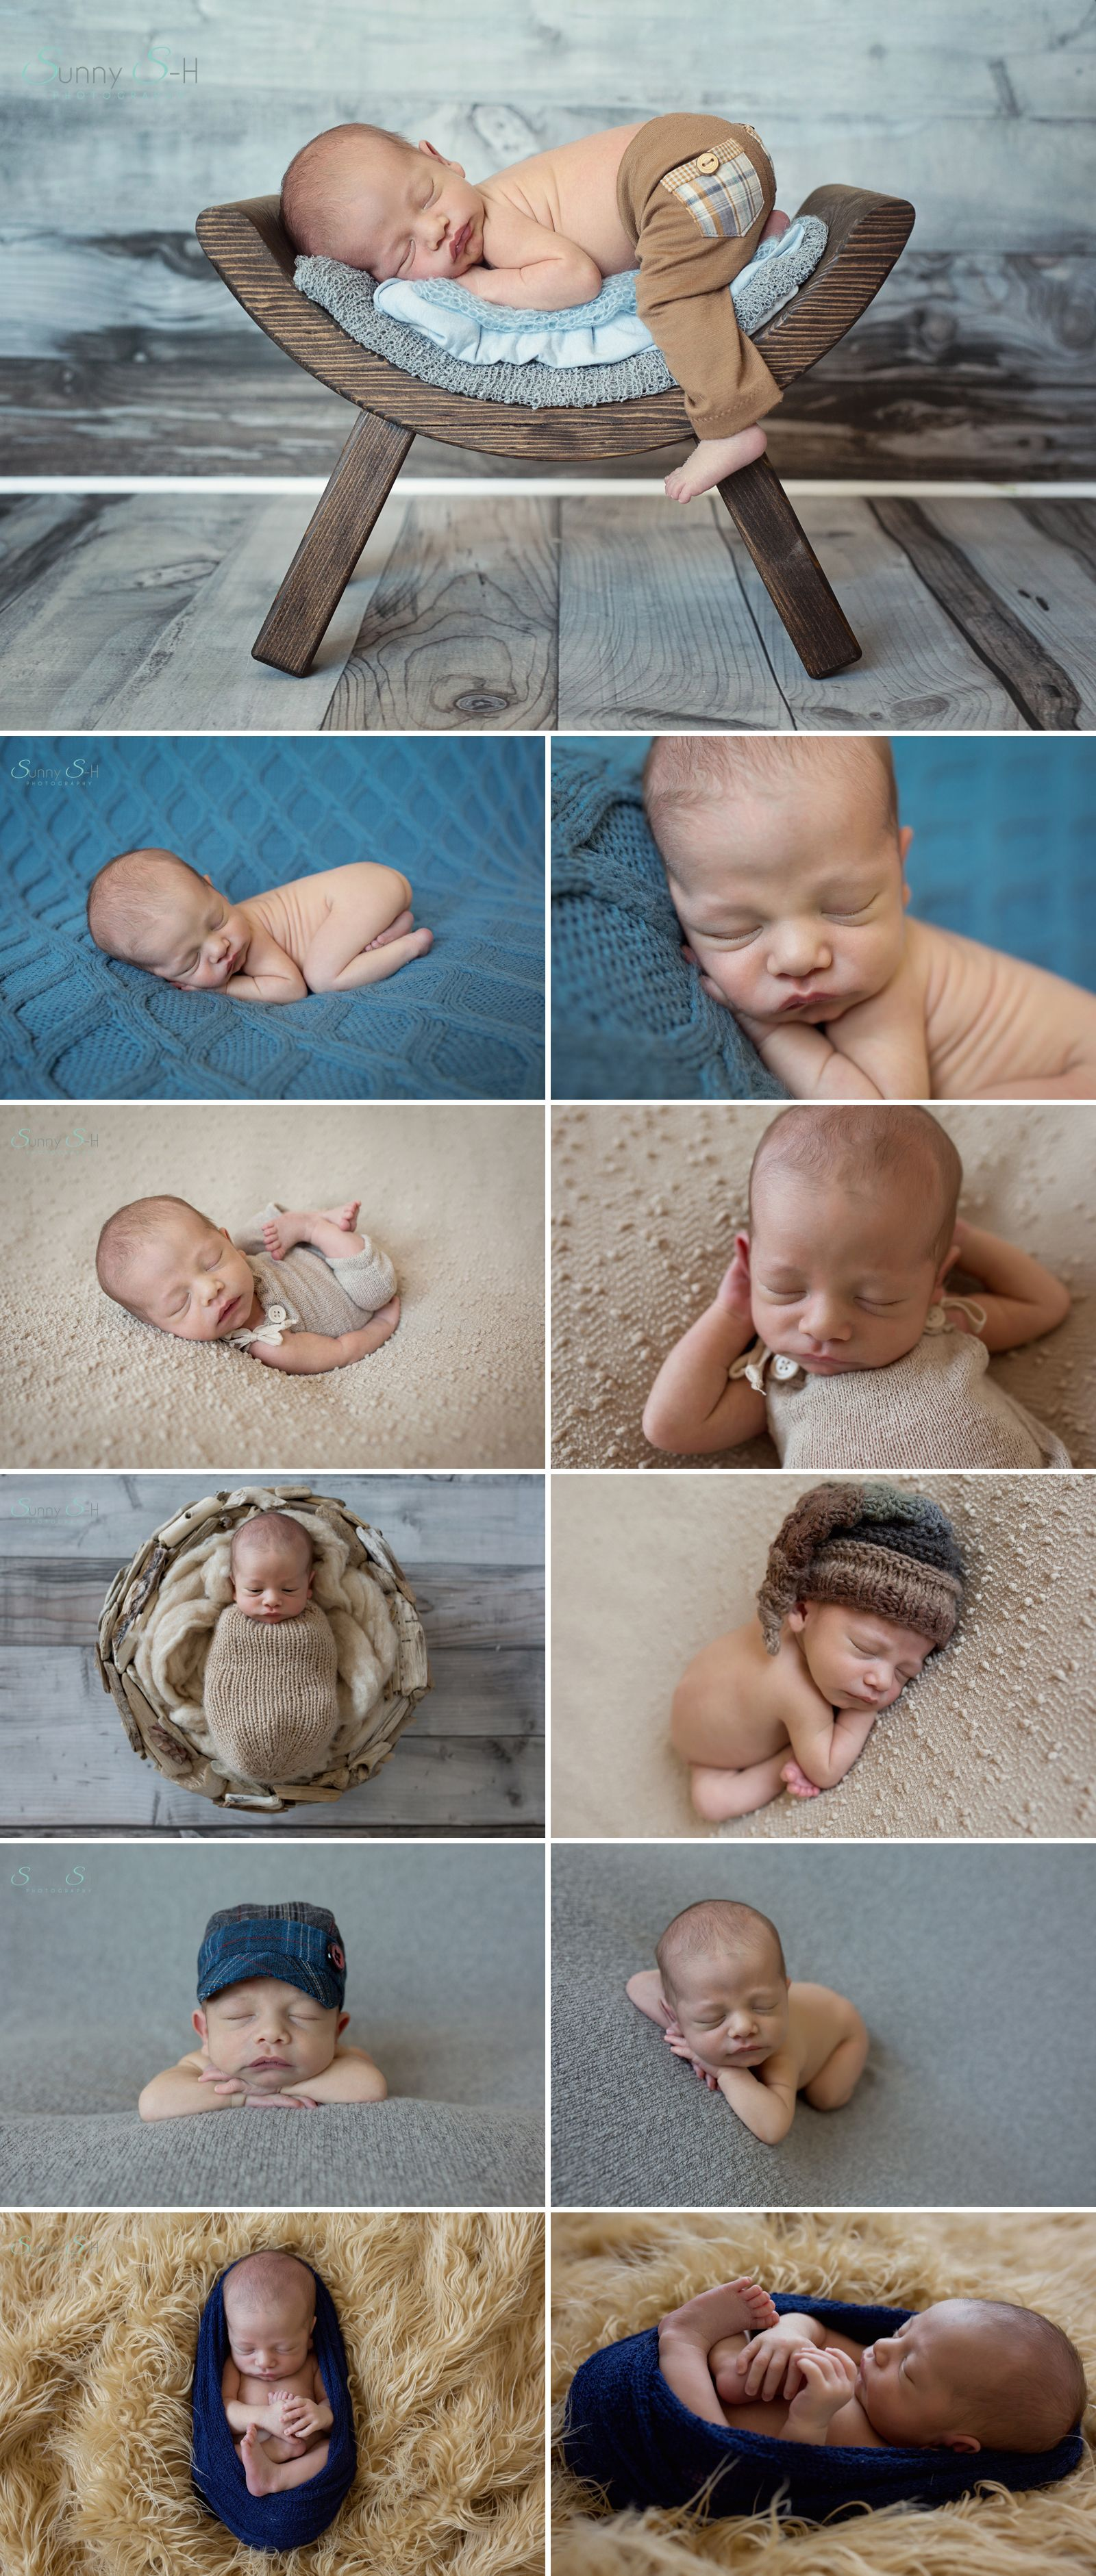 10 day old baby boy in studio for his first photo shoot sunny s h photography https www amazon com painting educational learning children toddlers dp